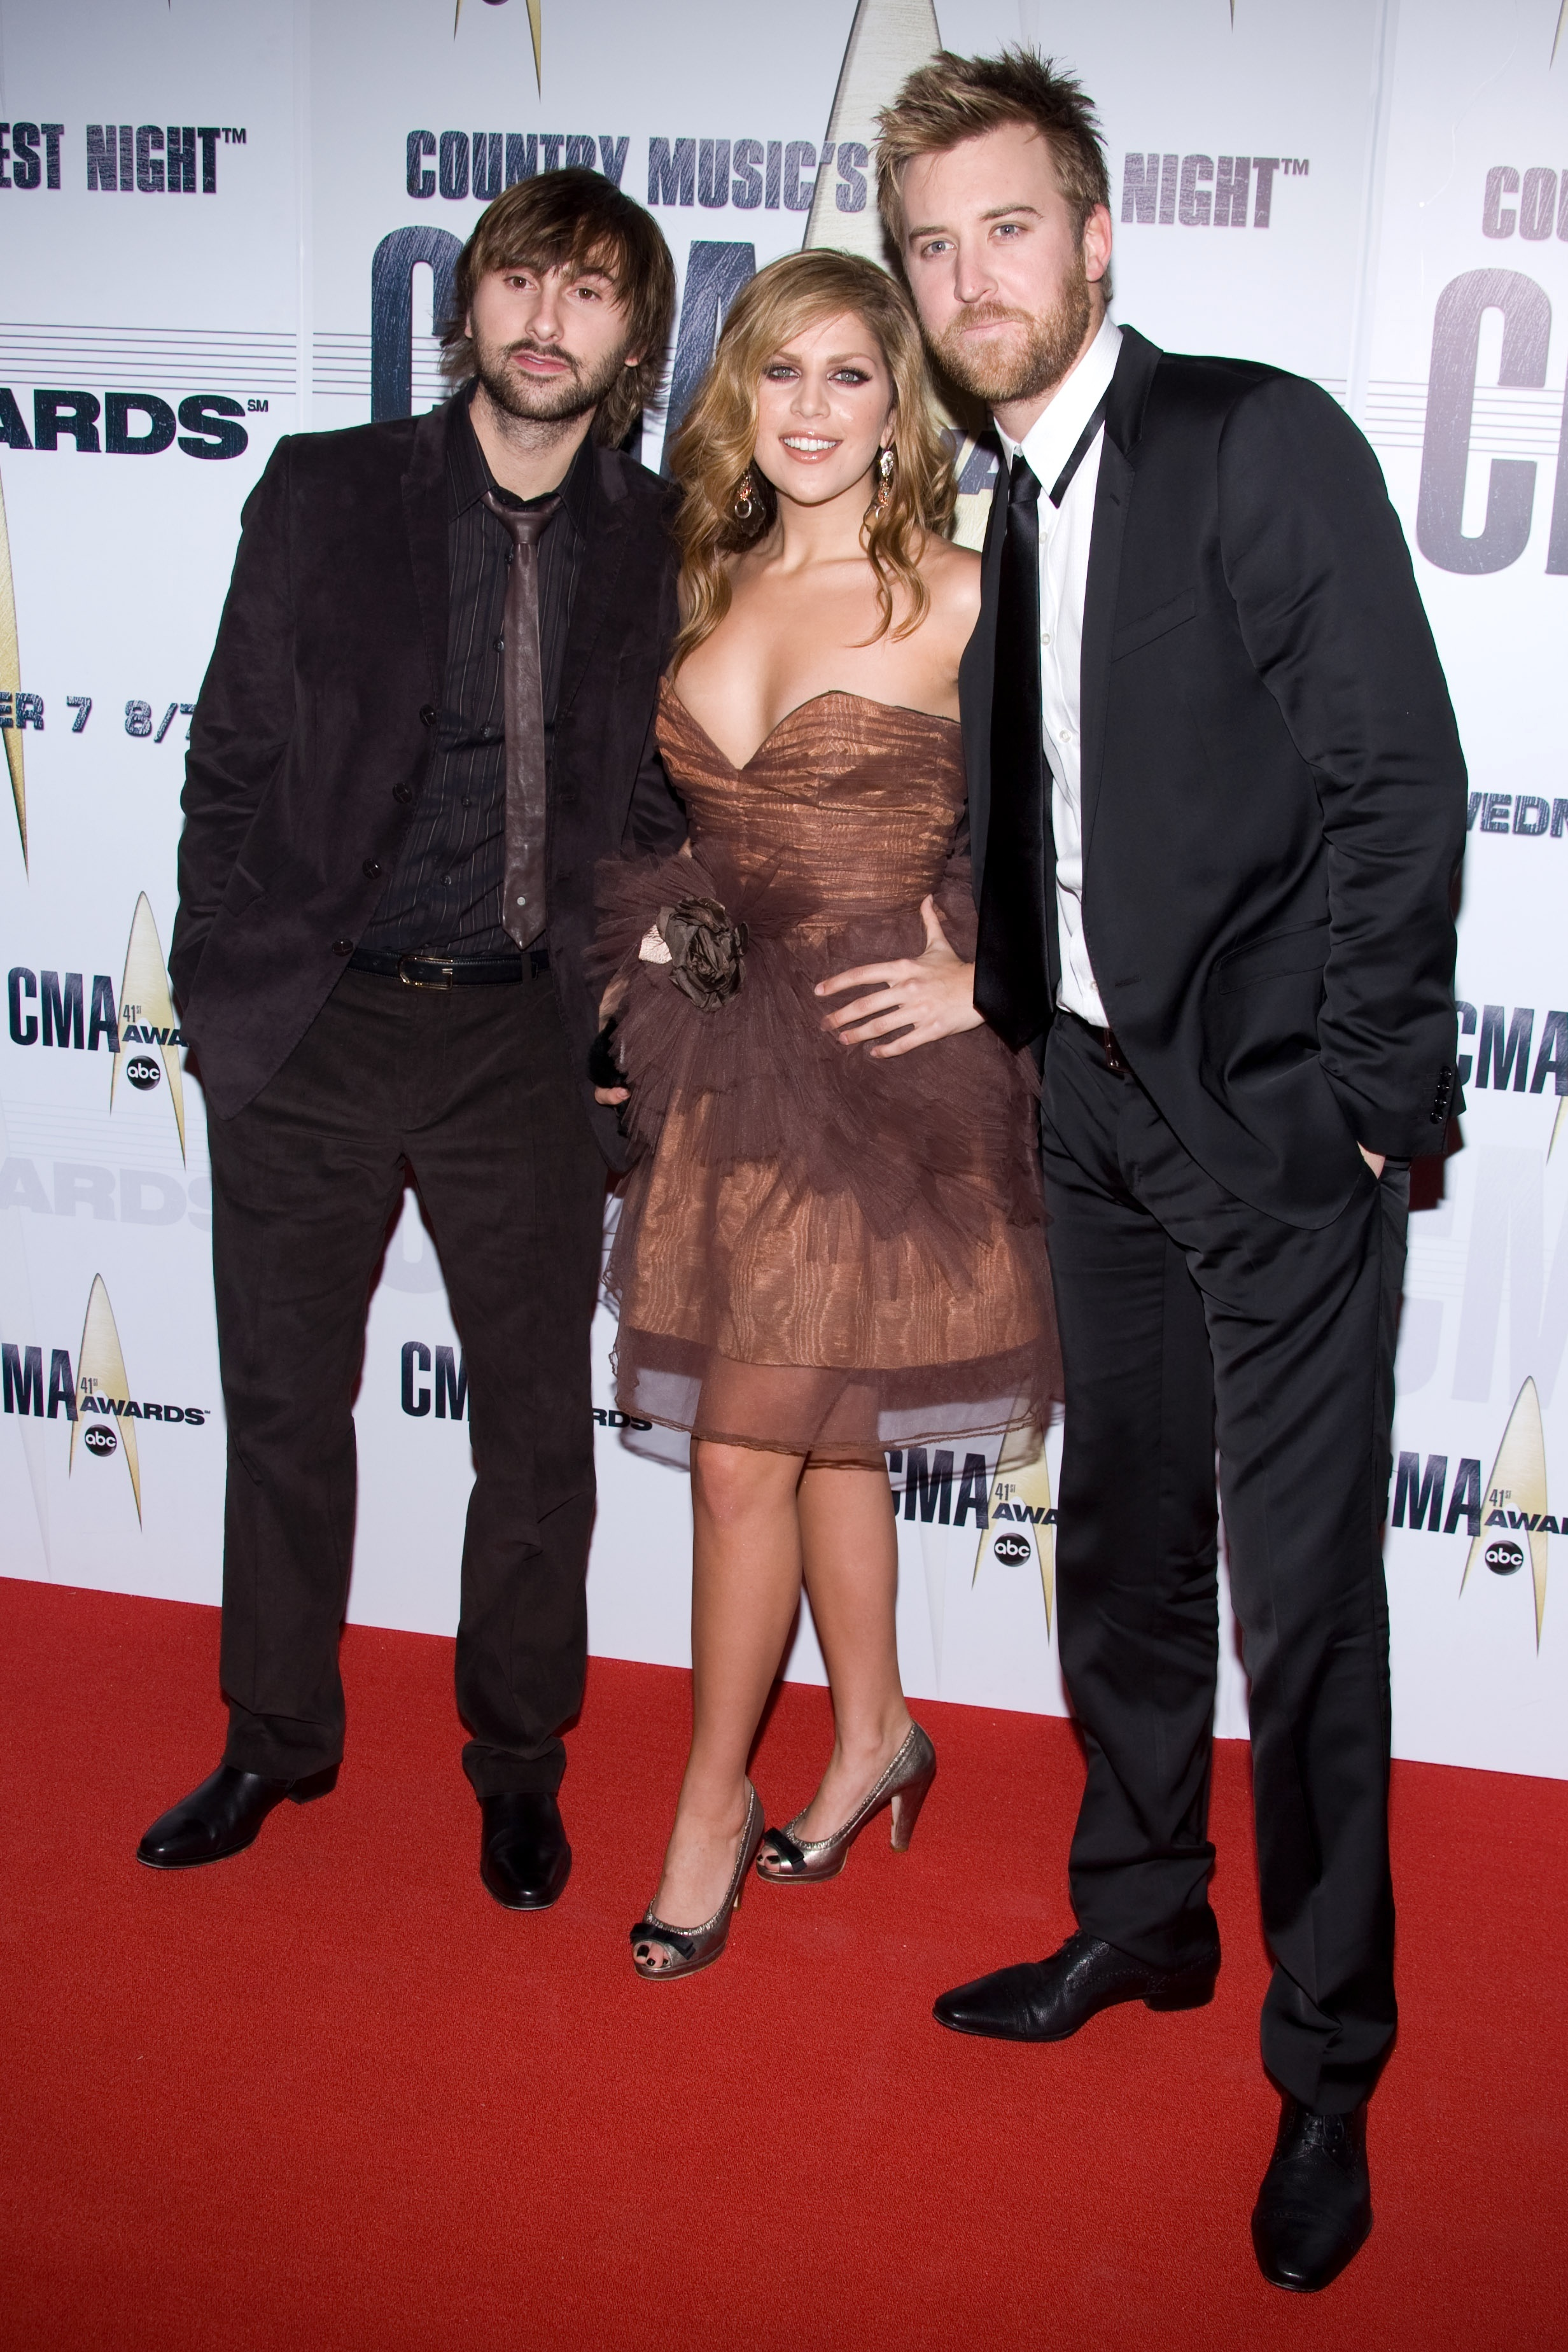 Lady Antebellum at the CMA Awards in Nashville on Nov. 7, 2007.